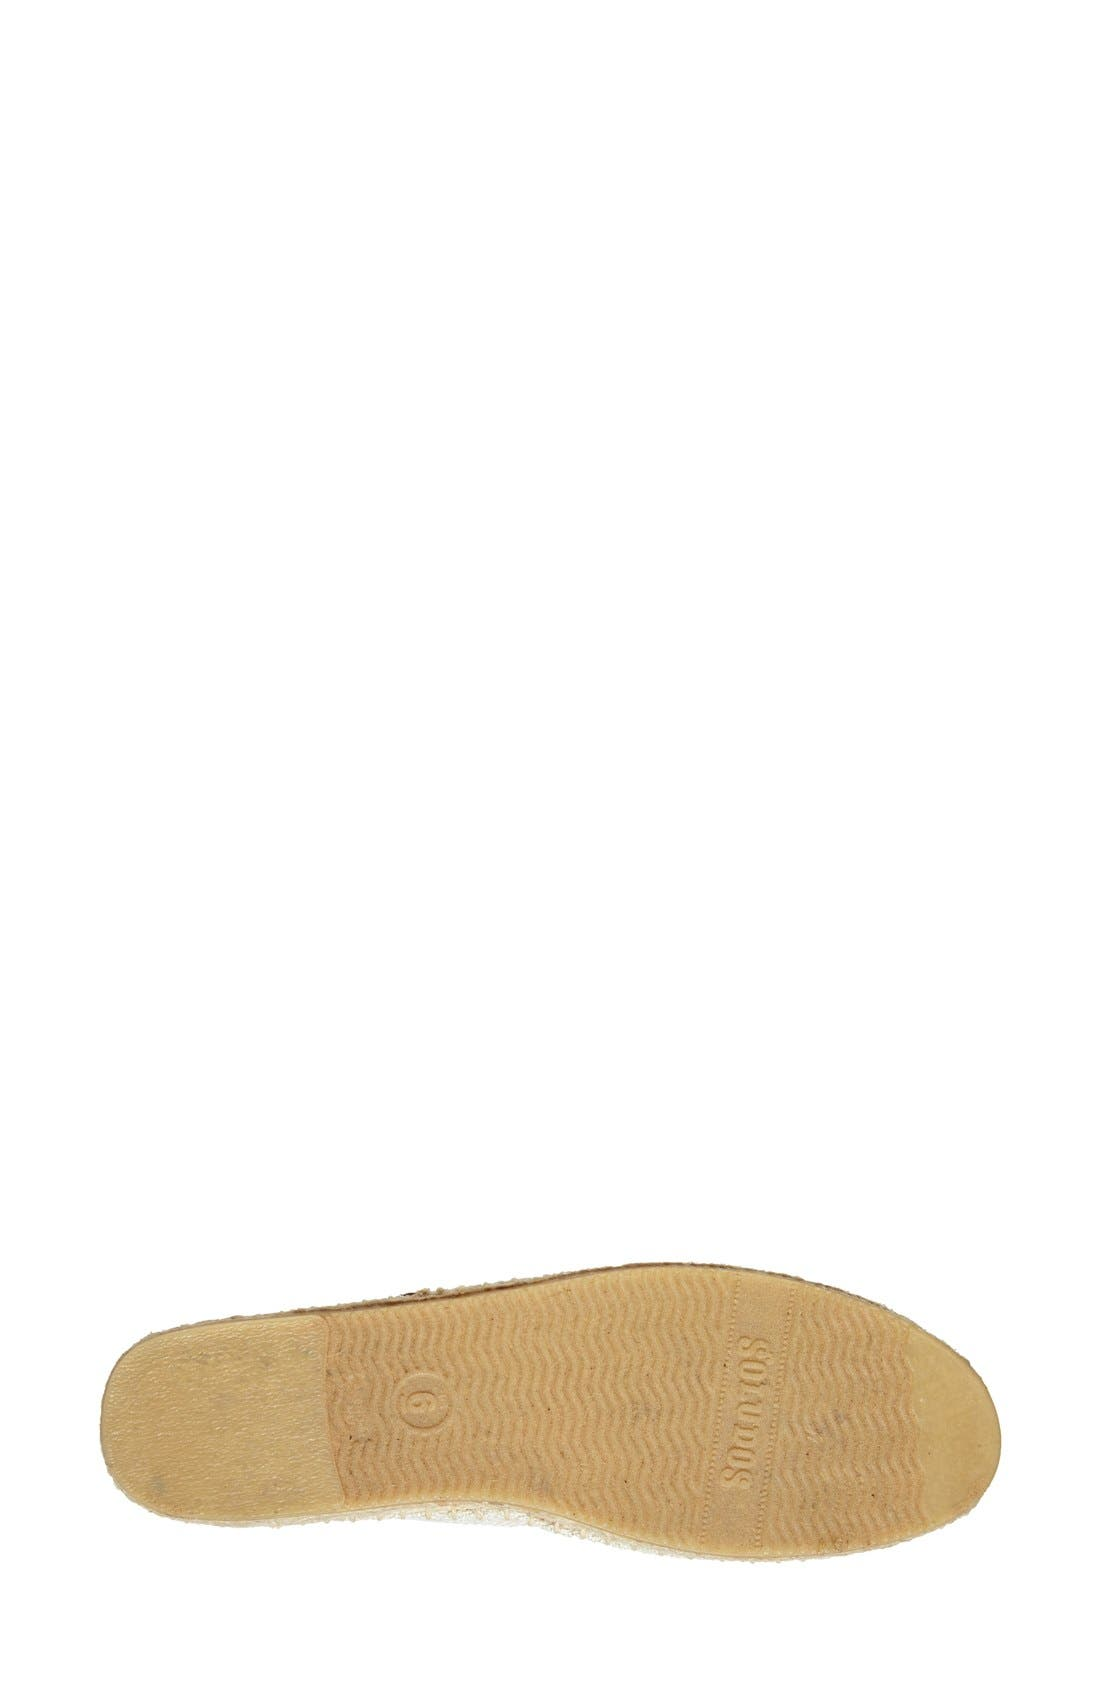 SOLUDOS,                             Jason Polan Espadrille Sandal,                             Alternate thumbnail 4, color,                             WINK SAND